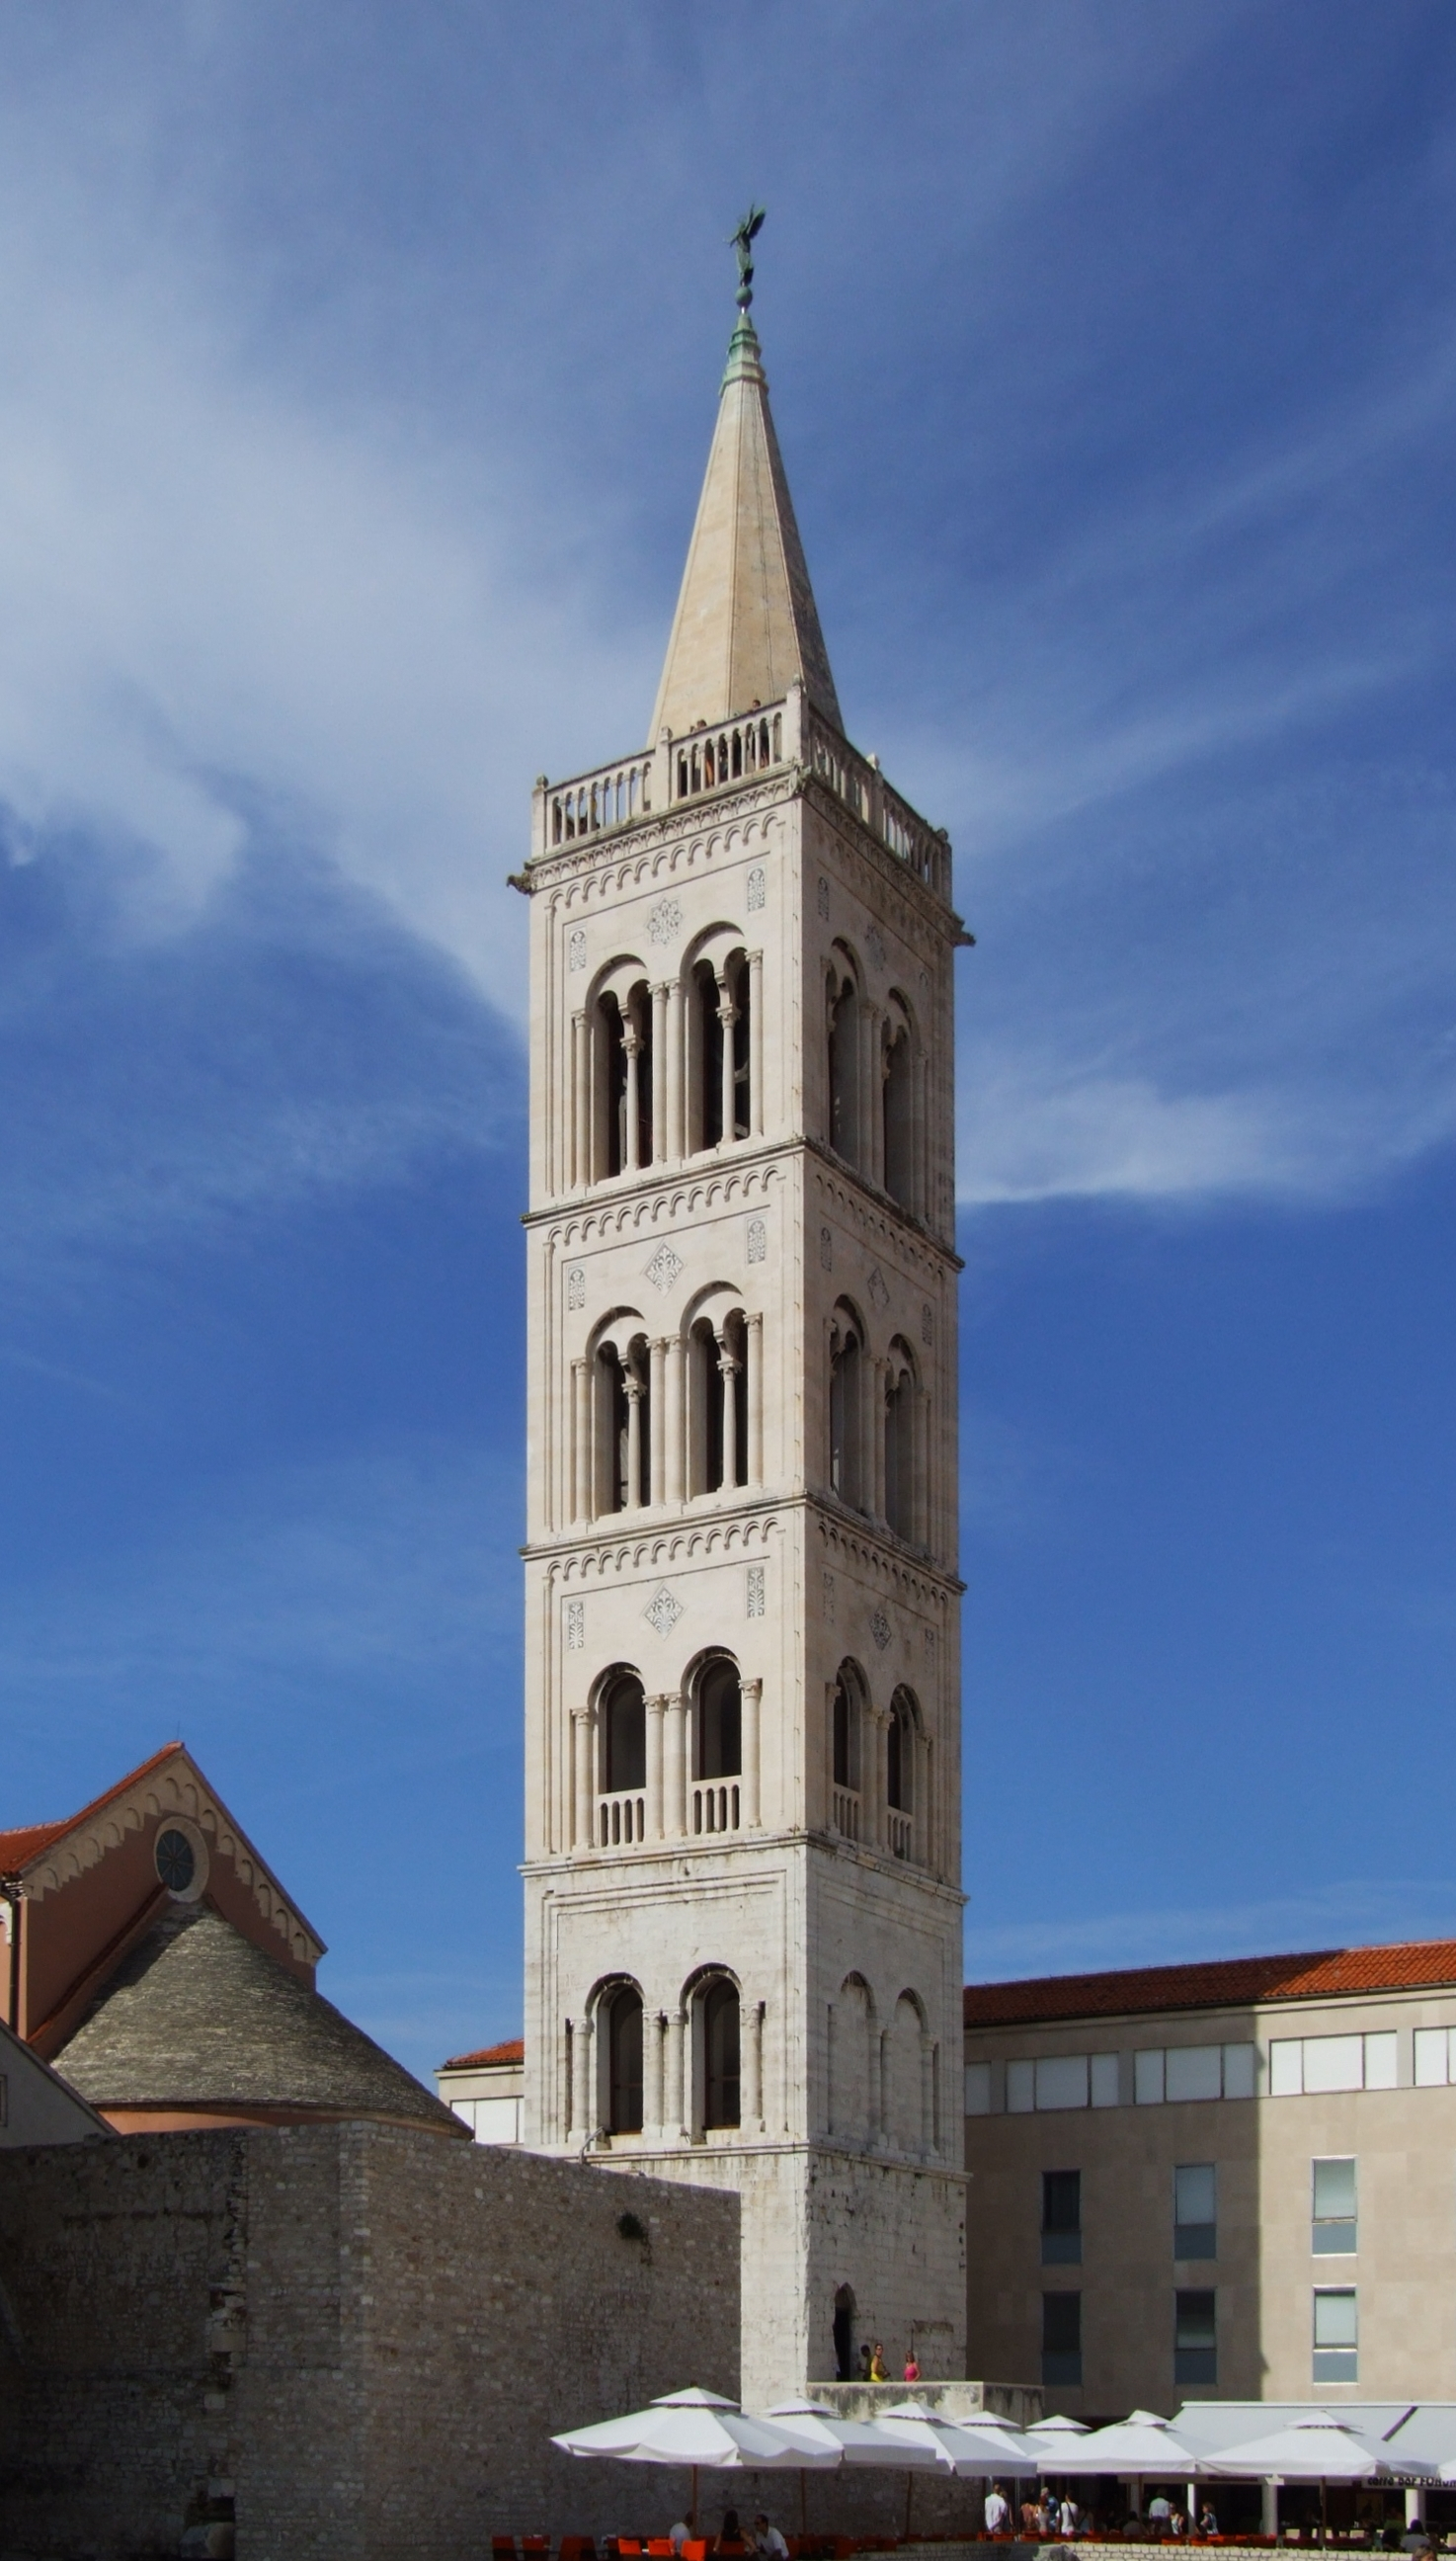 Bell tower of St Anastasia's Cathedral, Zadar